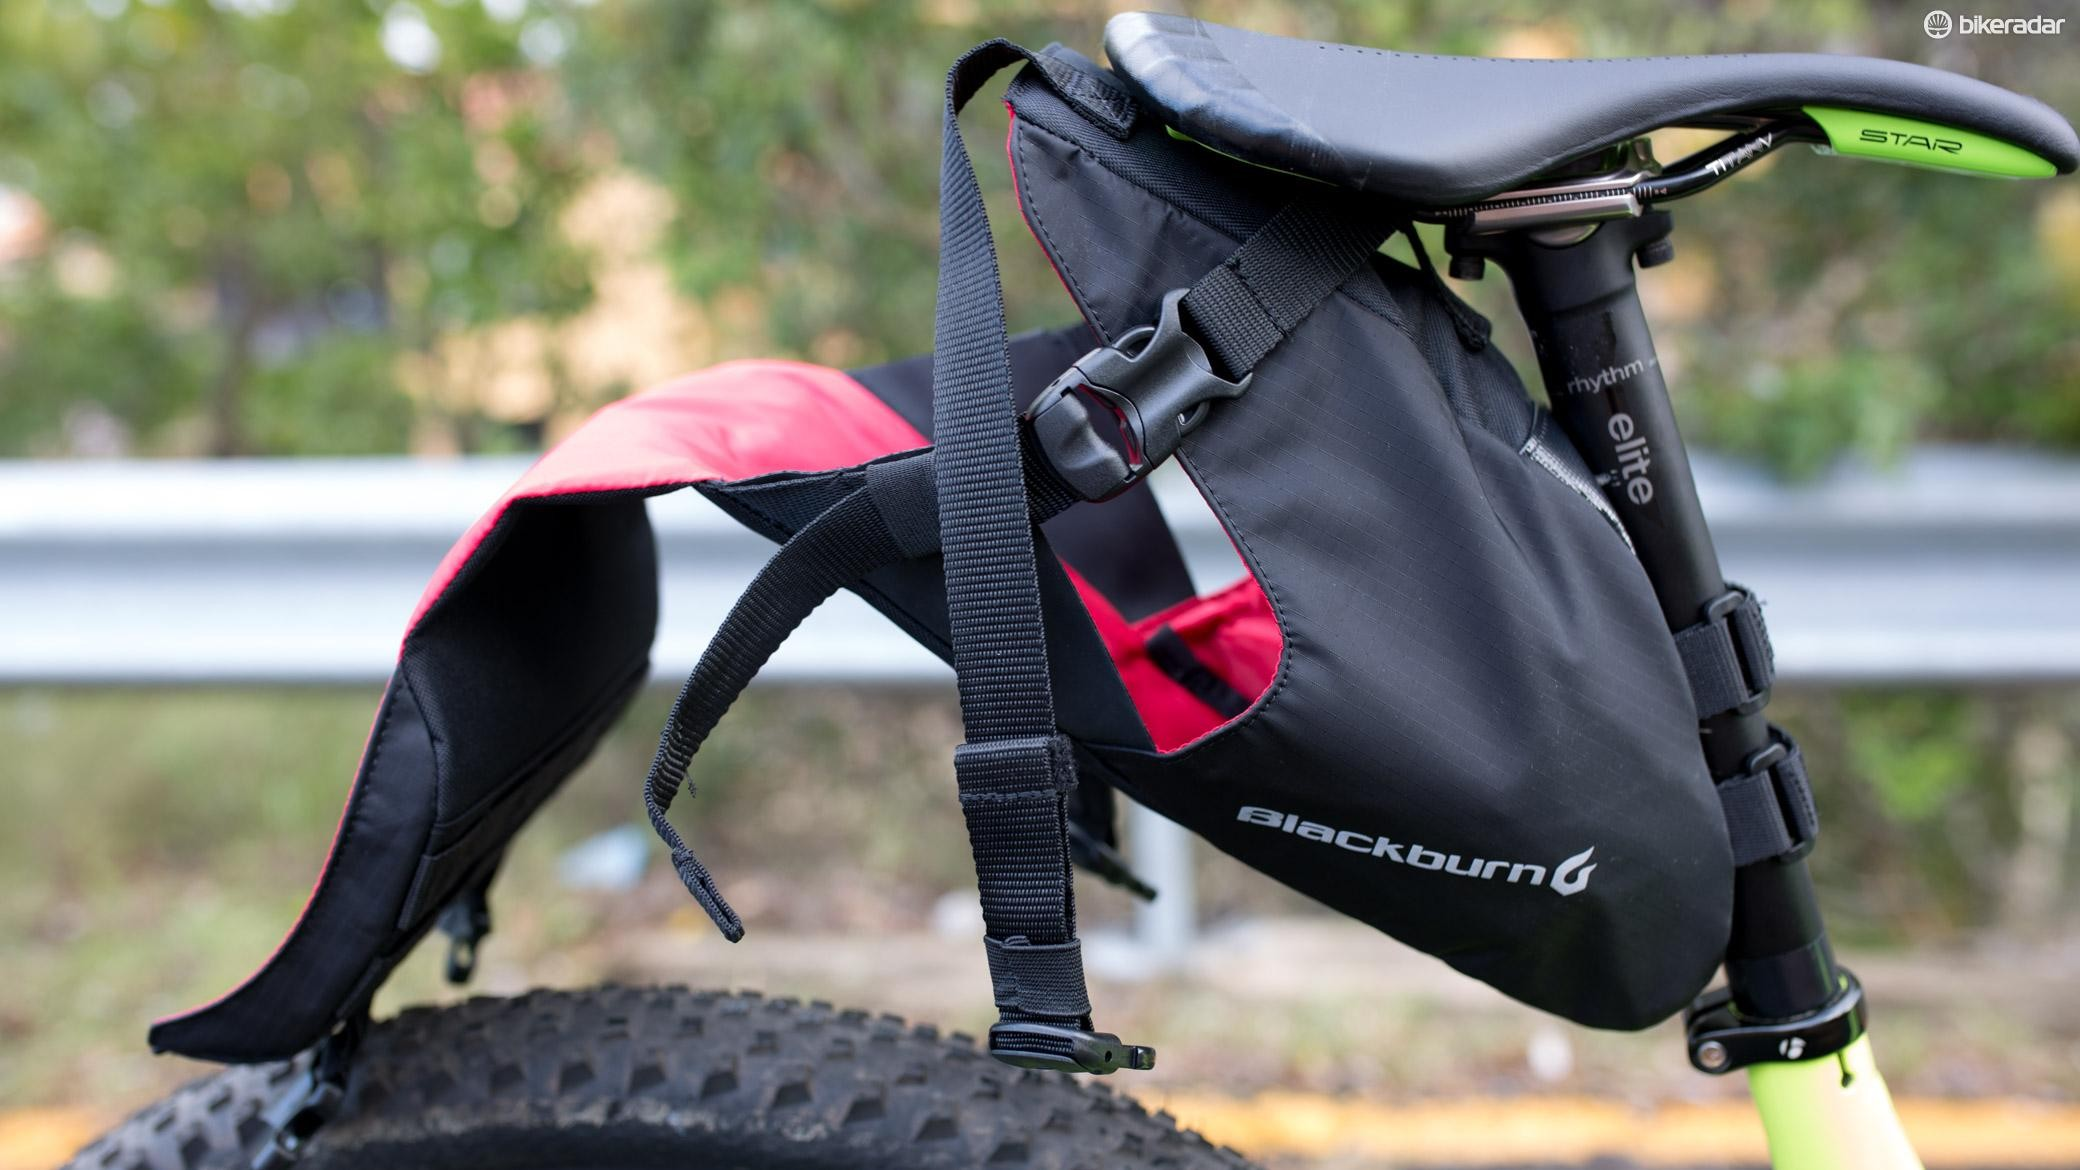 The holster allows you to adjust how far it sticks out behind the saddle based on how much you've stuffed in the dry bag